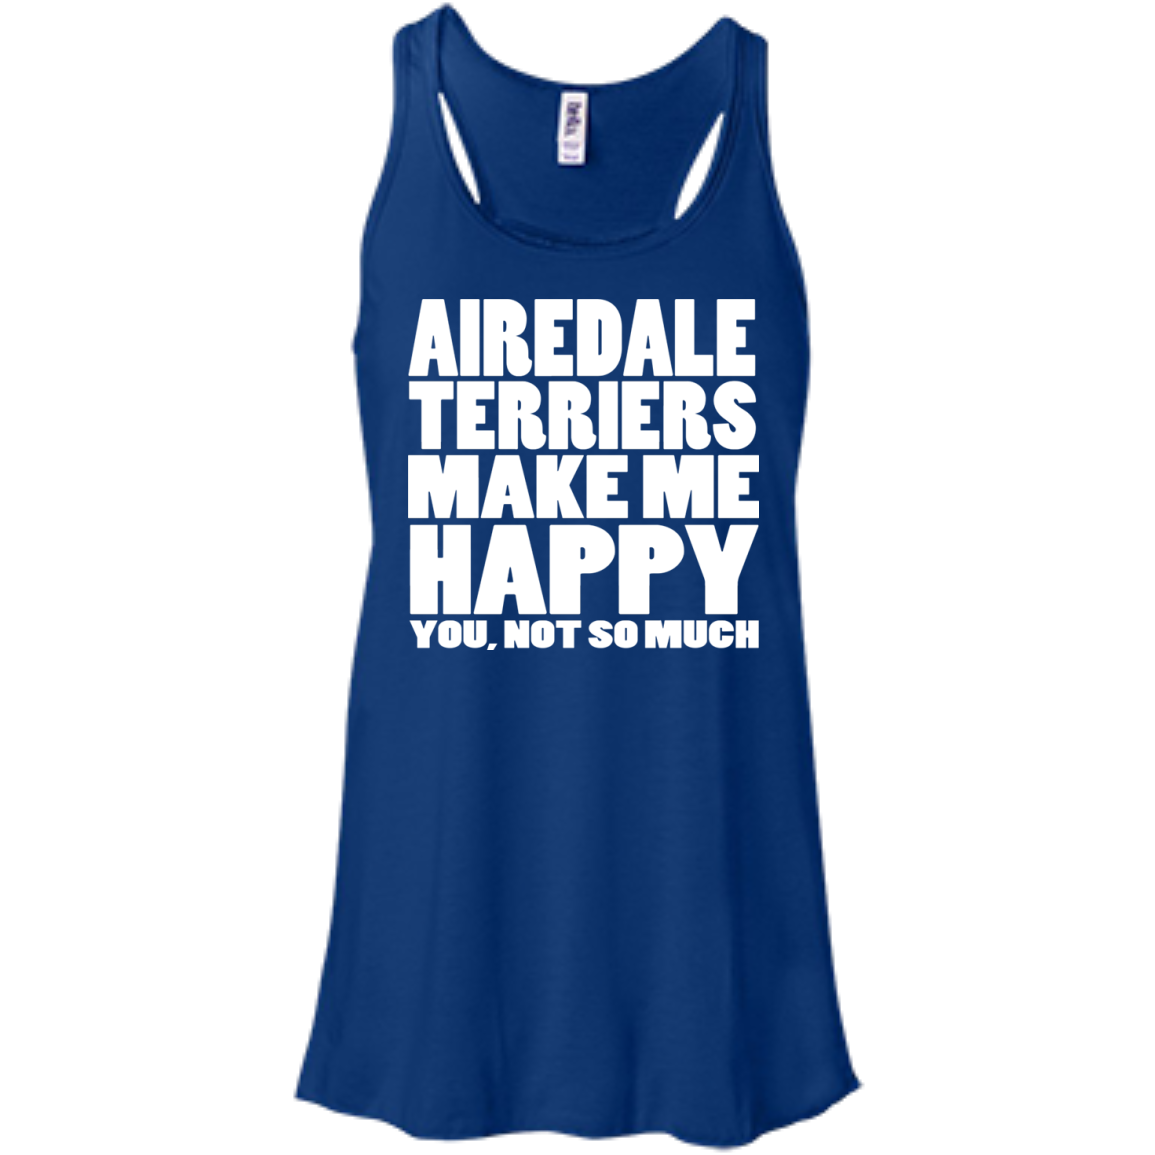 Airedale Terriers Make Me Happy You Not So Much Flowy Racerback Tanks